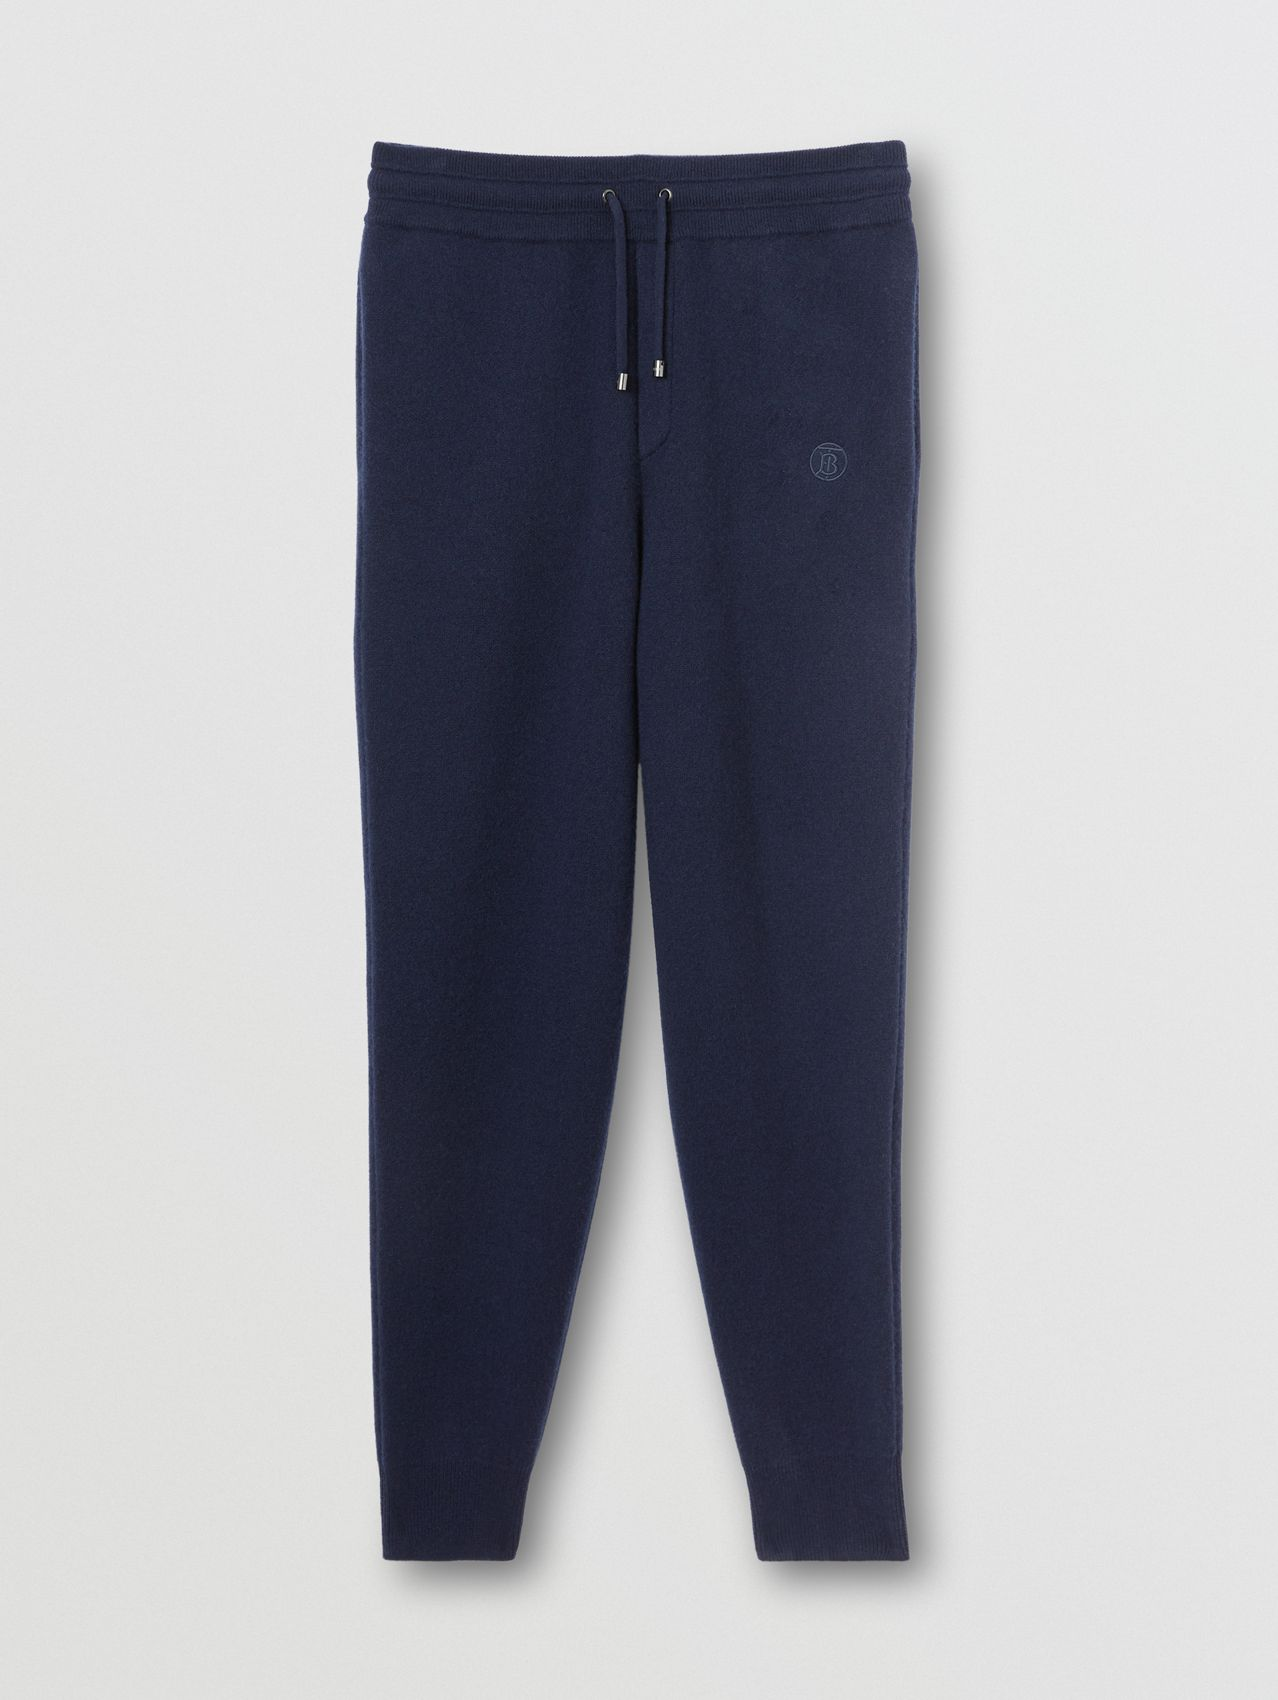 Monogram Motif Cashmere Blend Jogging Pants in Navy